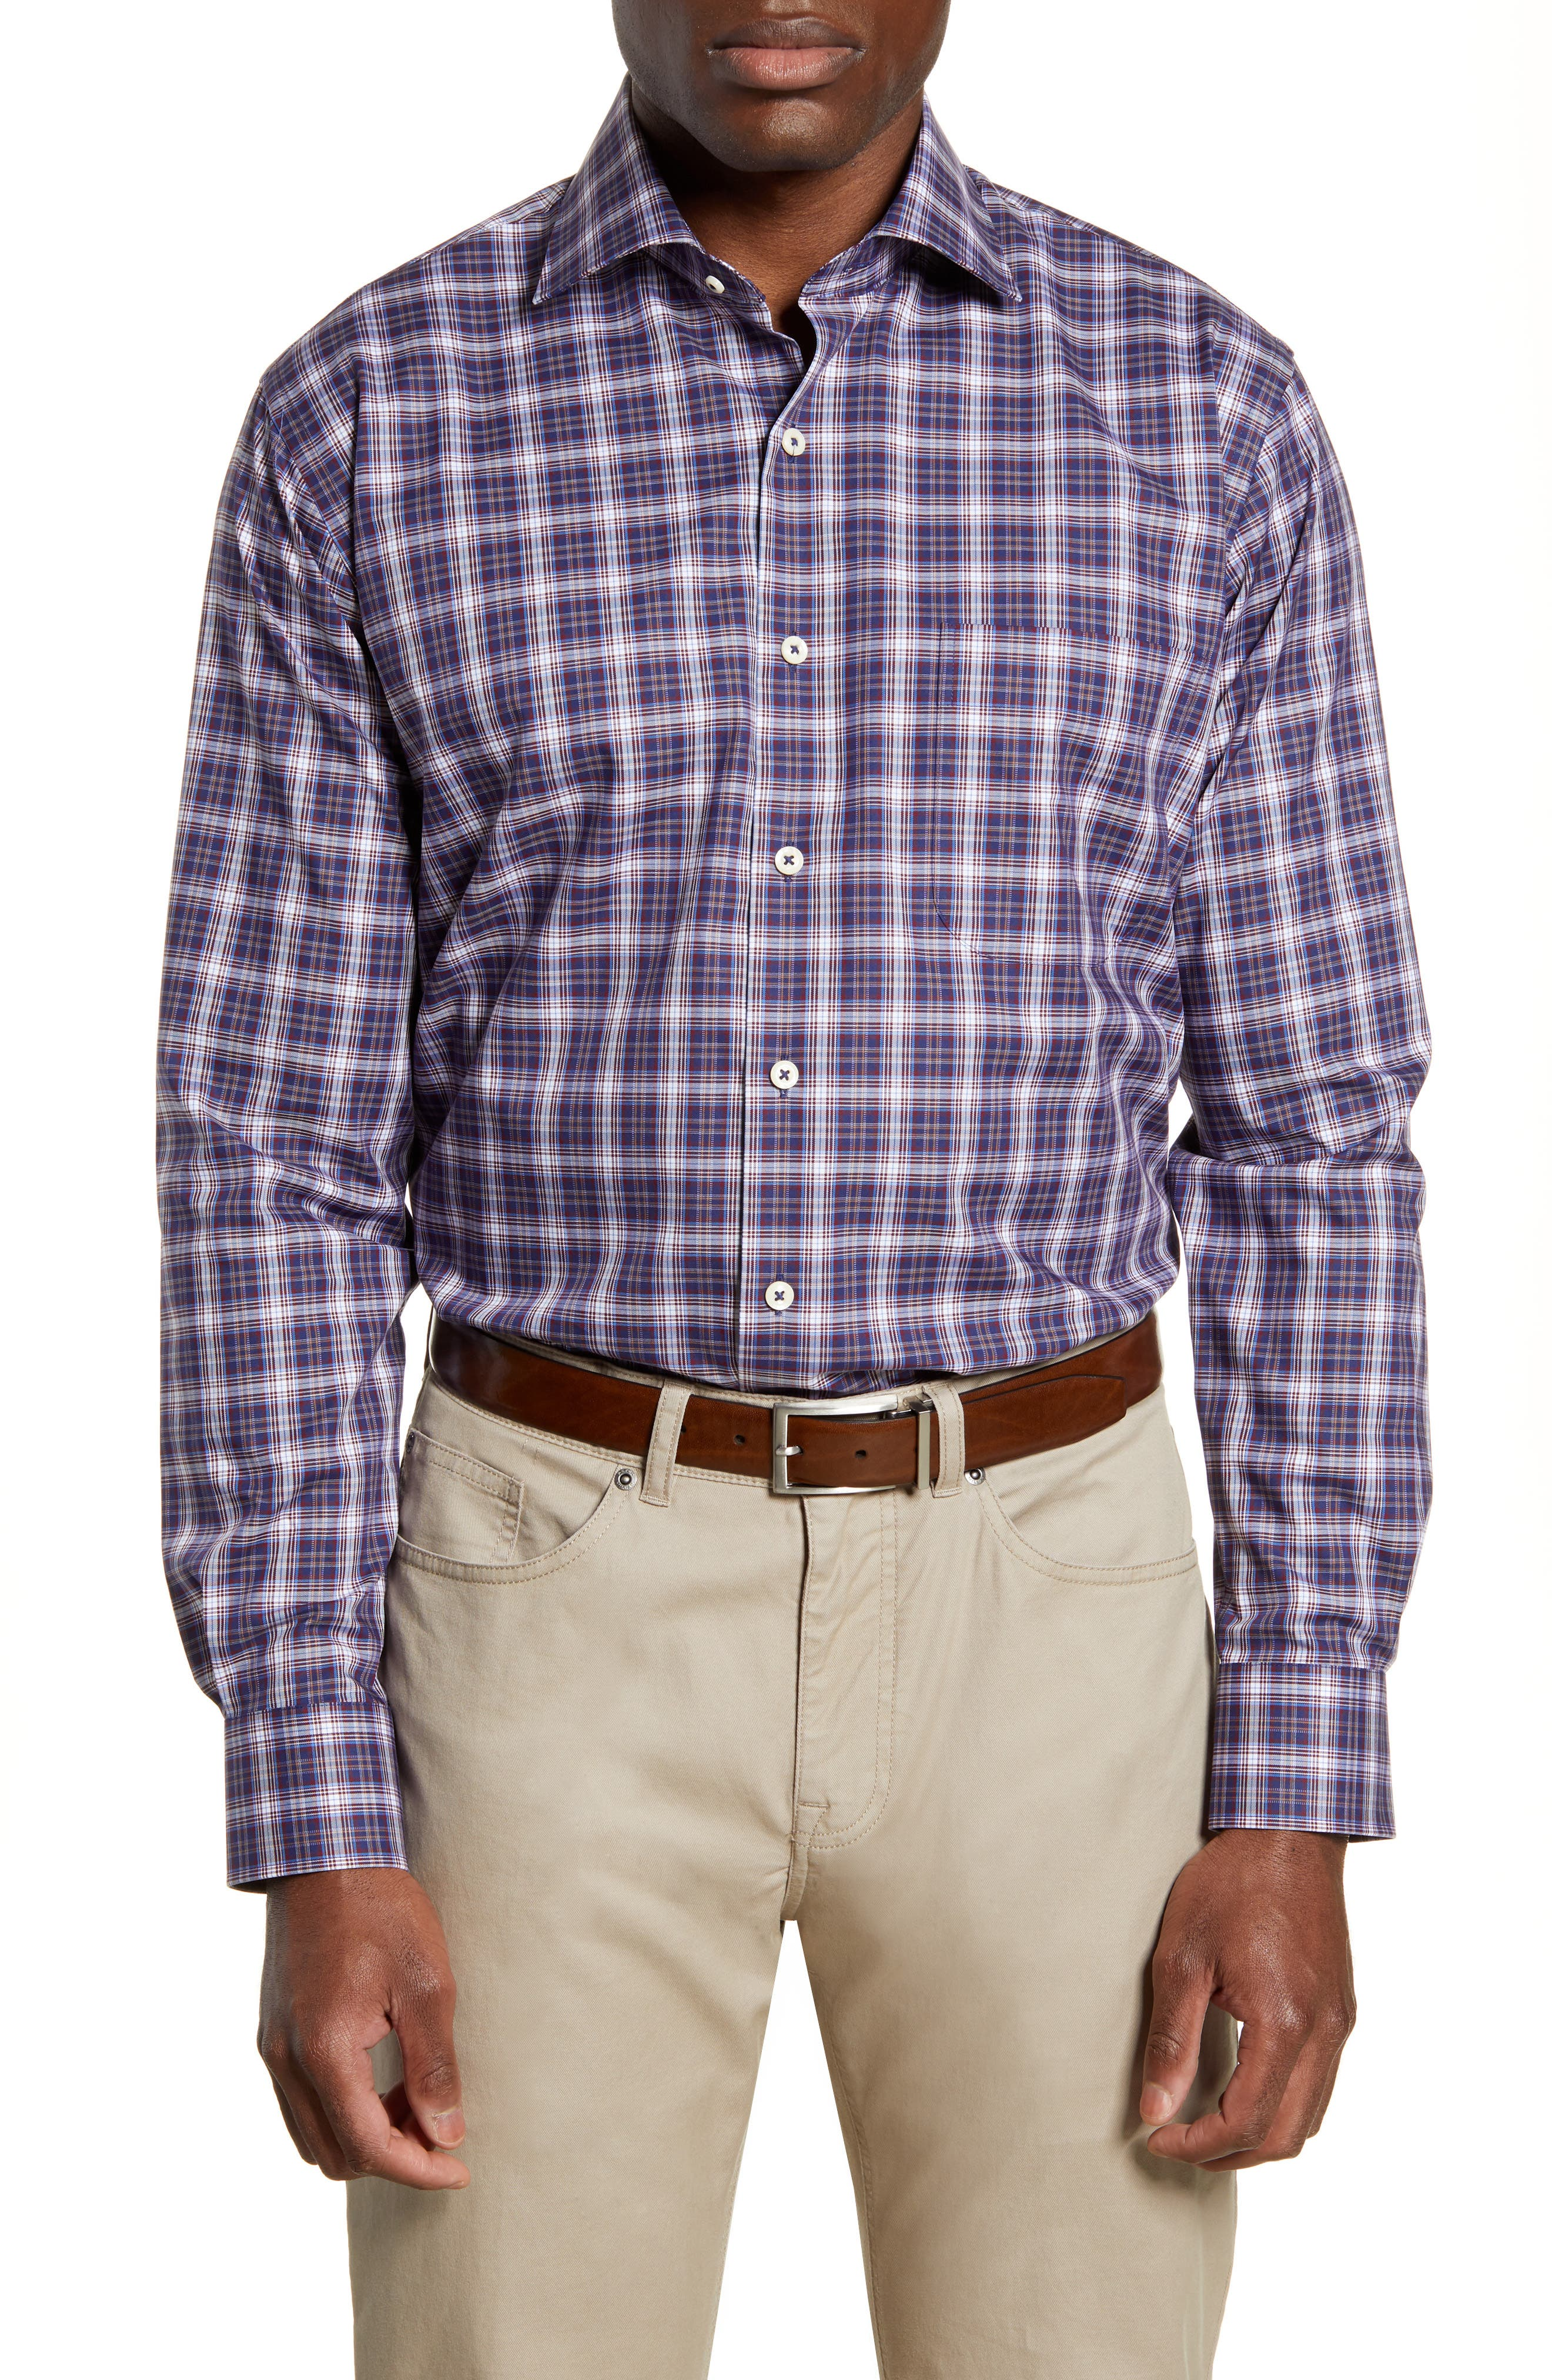 Bold plaid touches up a versatile sport shirt cut from stretchy, soft cotton for flexible comfort. Style Name: Peter Millar Old Forge Regular Fit Plaid Button-Up Sport Shirt. Style Number: 5881736. Available in stores.